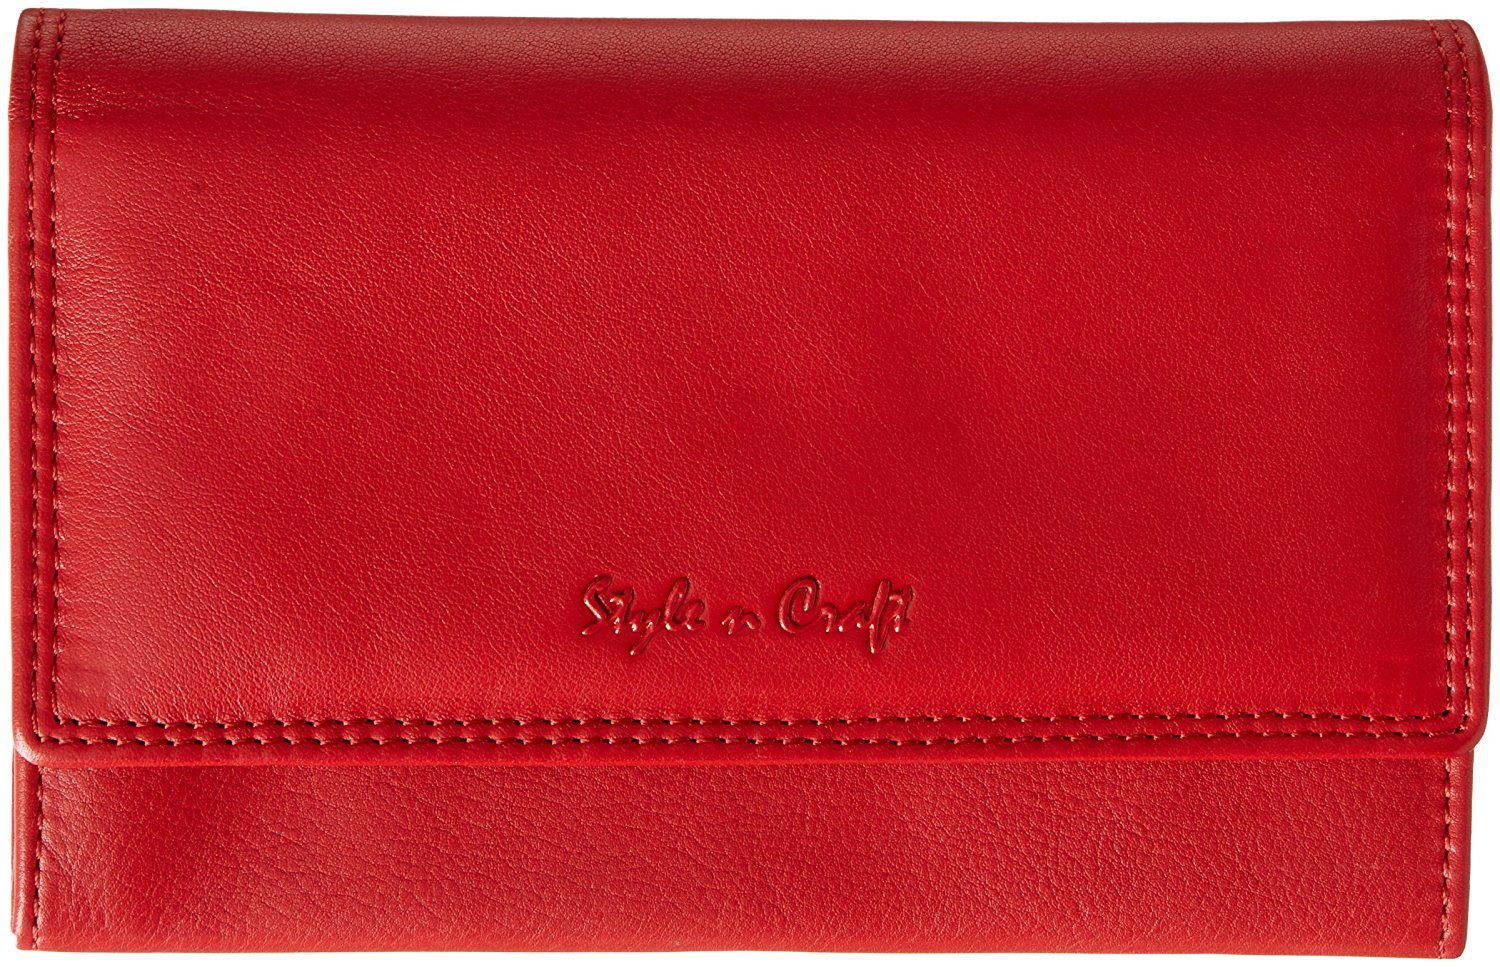 Style n Craft 300953 Ladies Clutch Wallet in Soft Cow Nappa Leather